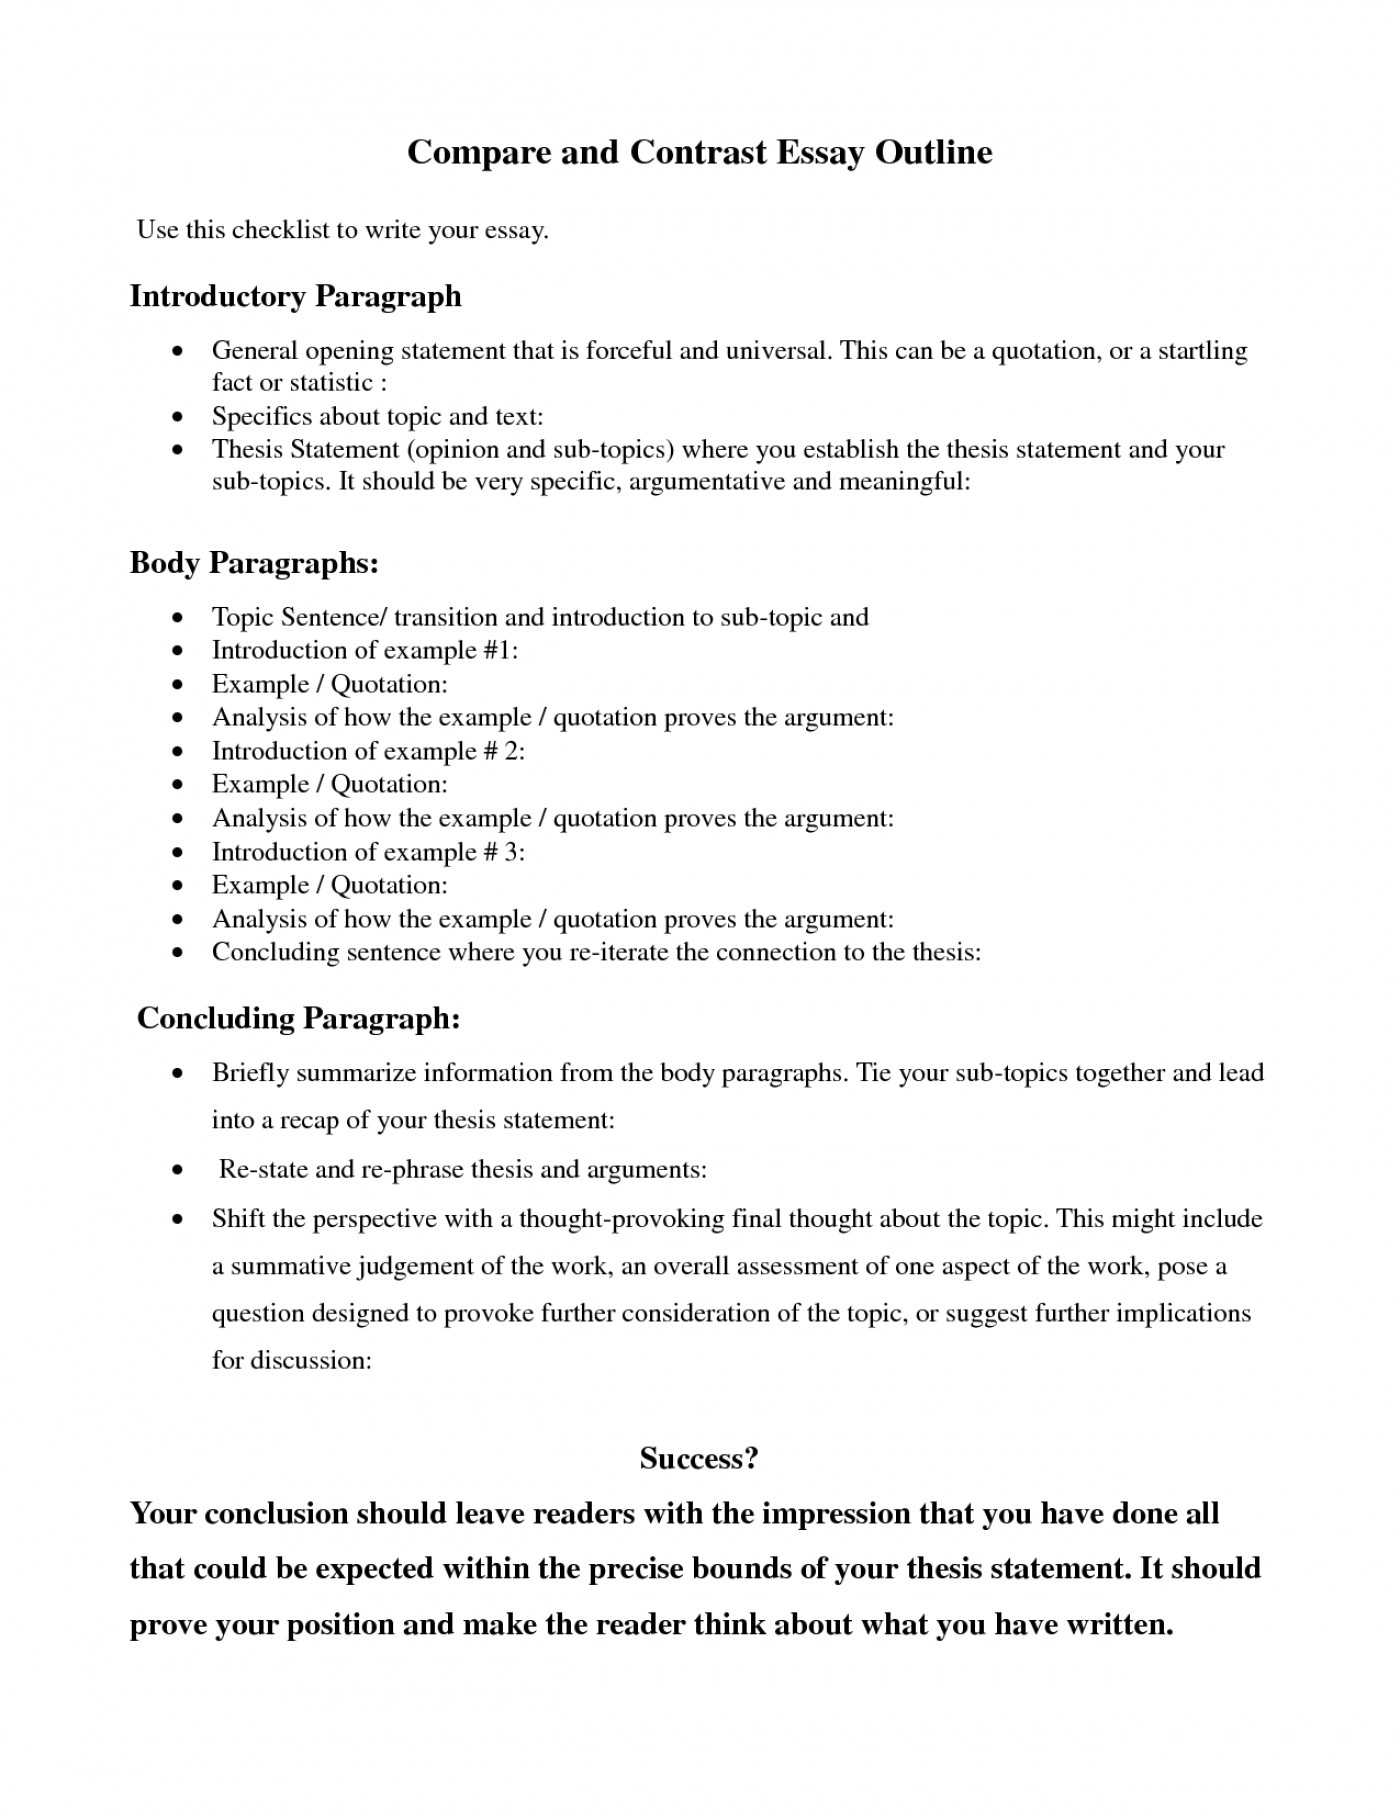 Argumentative Essay Topics On Health  Modest Proposal Essay Ideas also How To Write An Essay High School  Sample Thesis Statement Maker Research Paper Free  Synthesis Essay Prompt